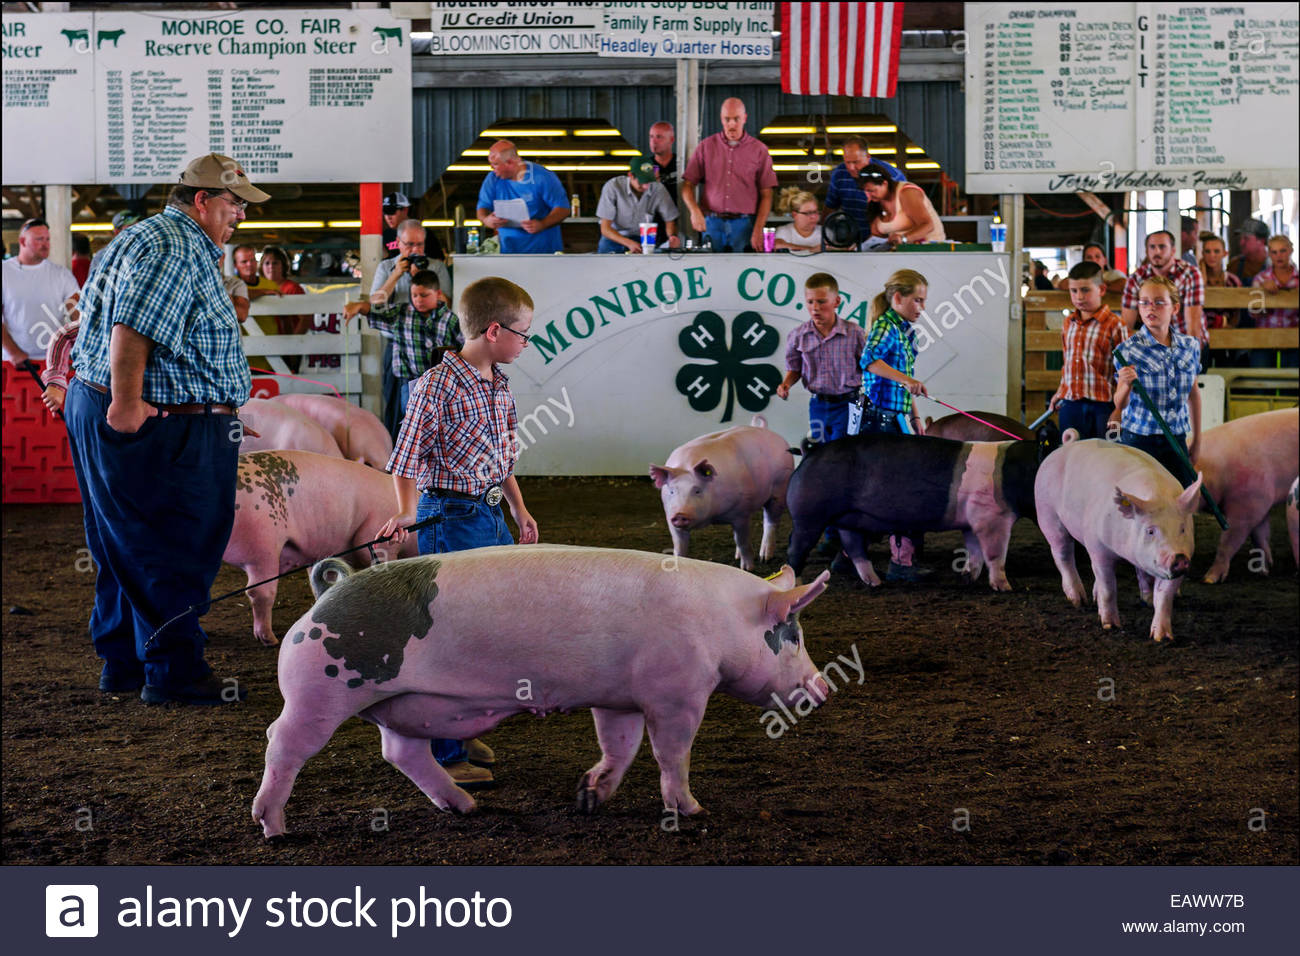 Some of the 900 young people who belong to the Monroe County, Indiana, 4-H program exhibit their prize pigs at the - Stock Image